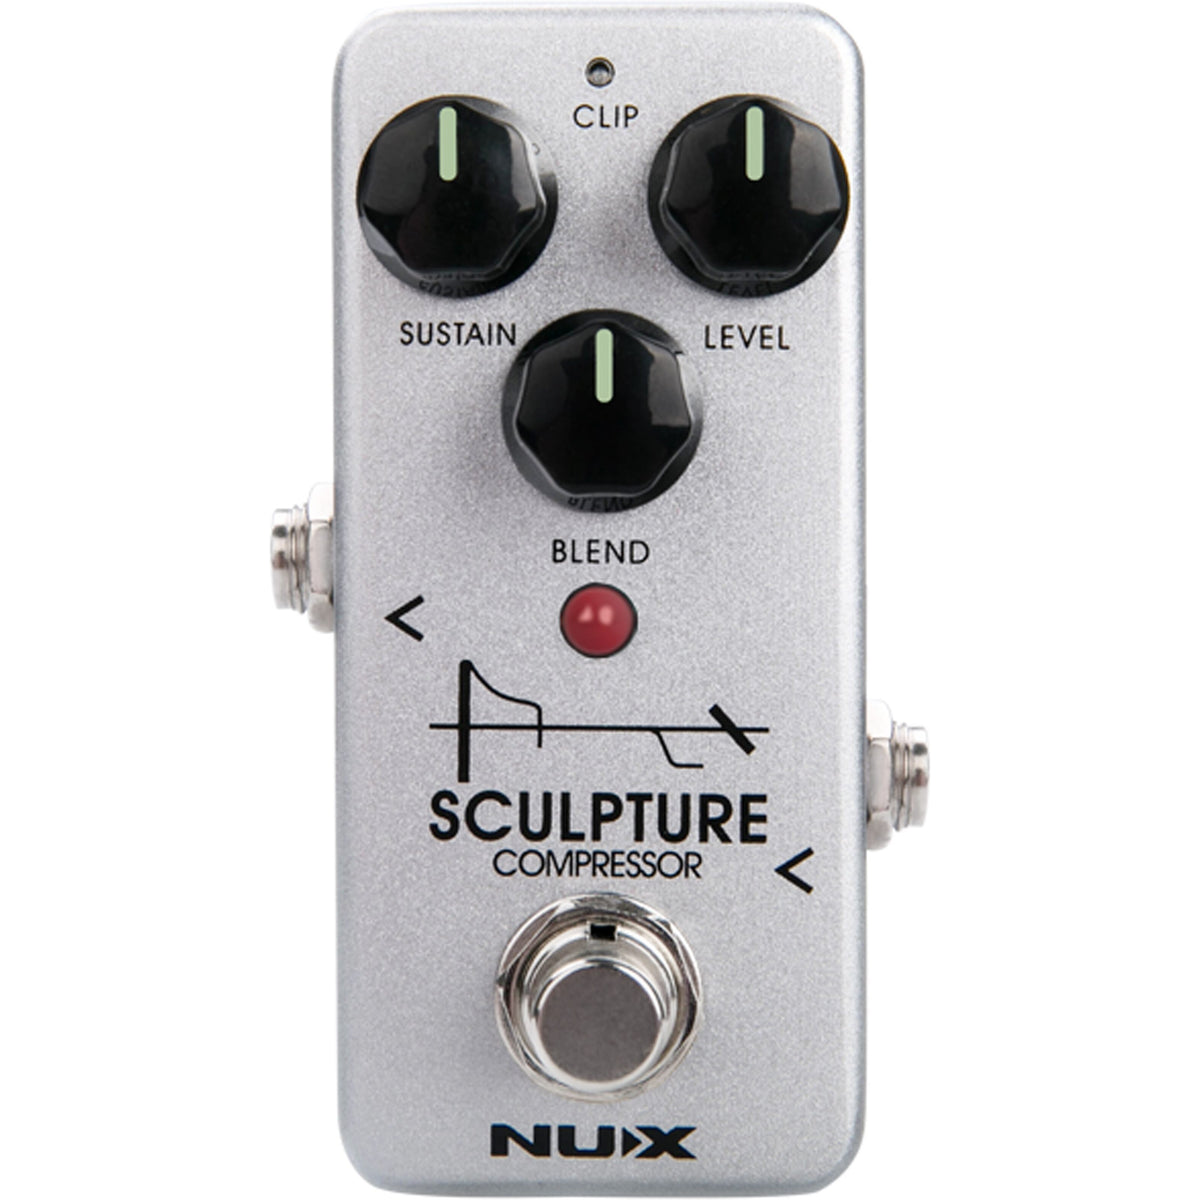 NUX Sculpture Compressor Pedal